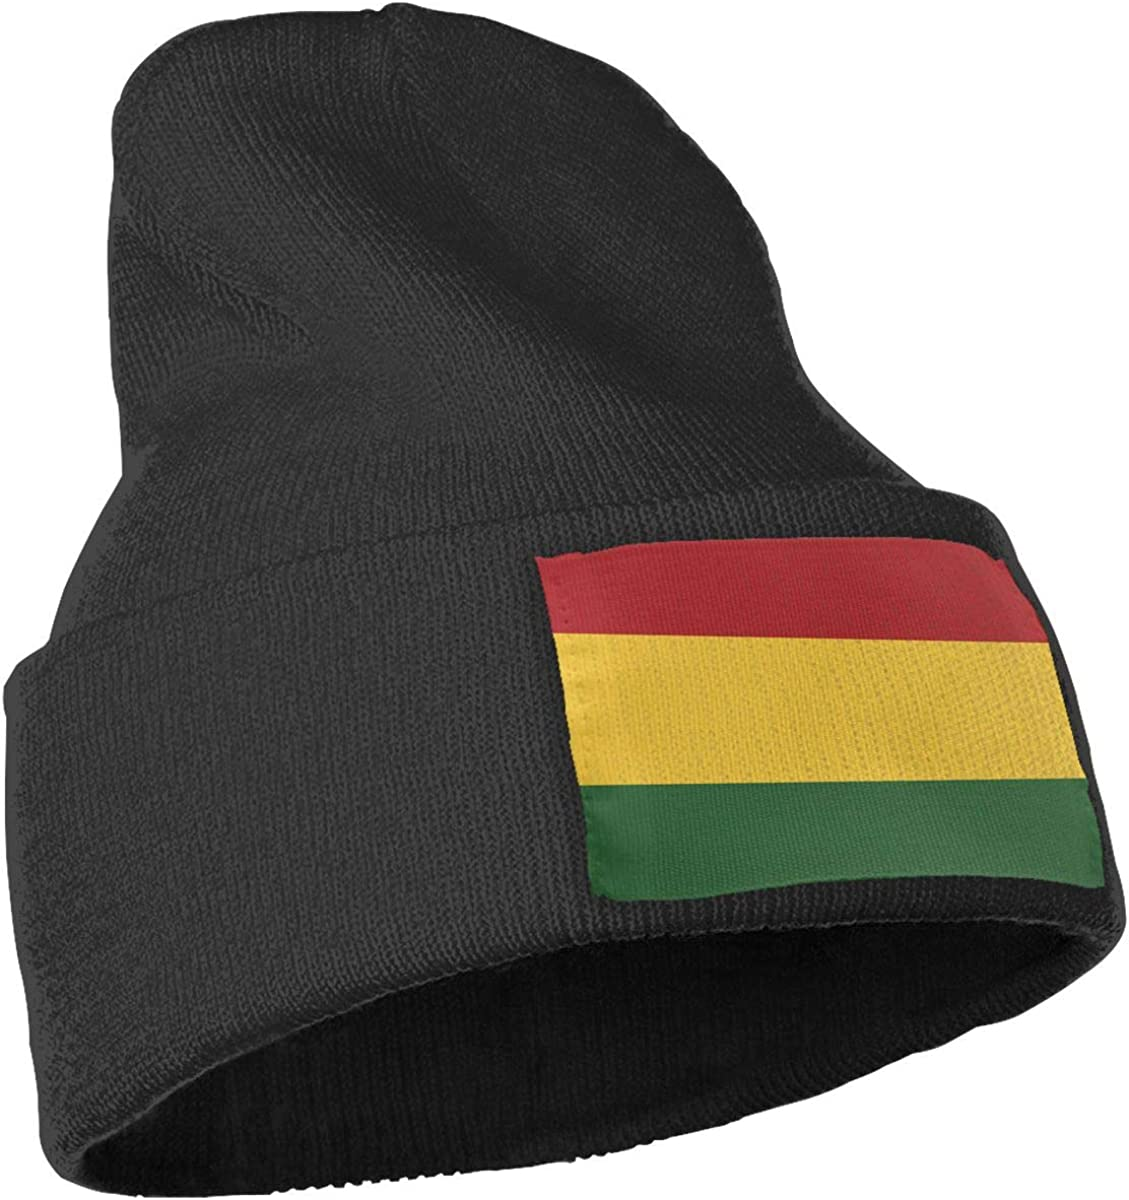 TAOMAP89 Rasta Flag Men /& Women Skull Caps Winter Warm Stretchy Knitting Beanie Hats